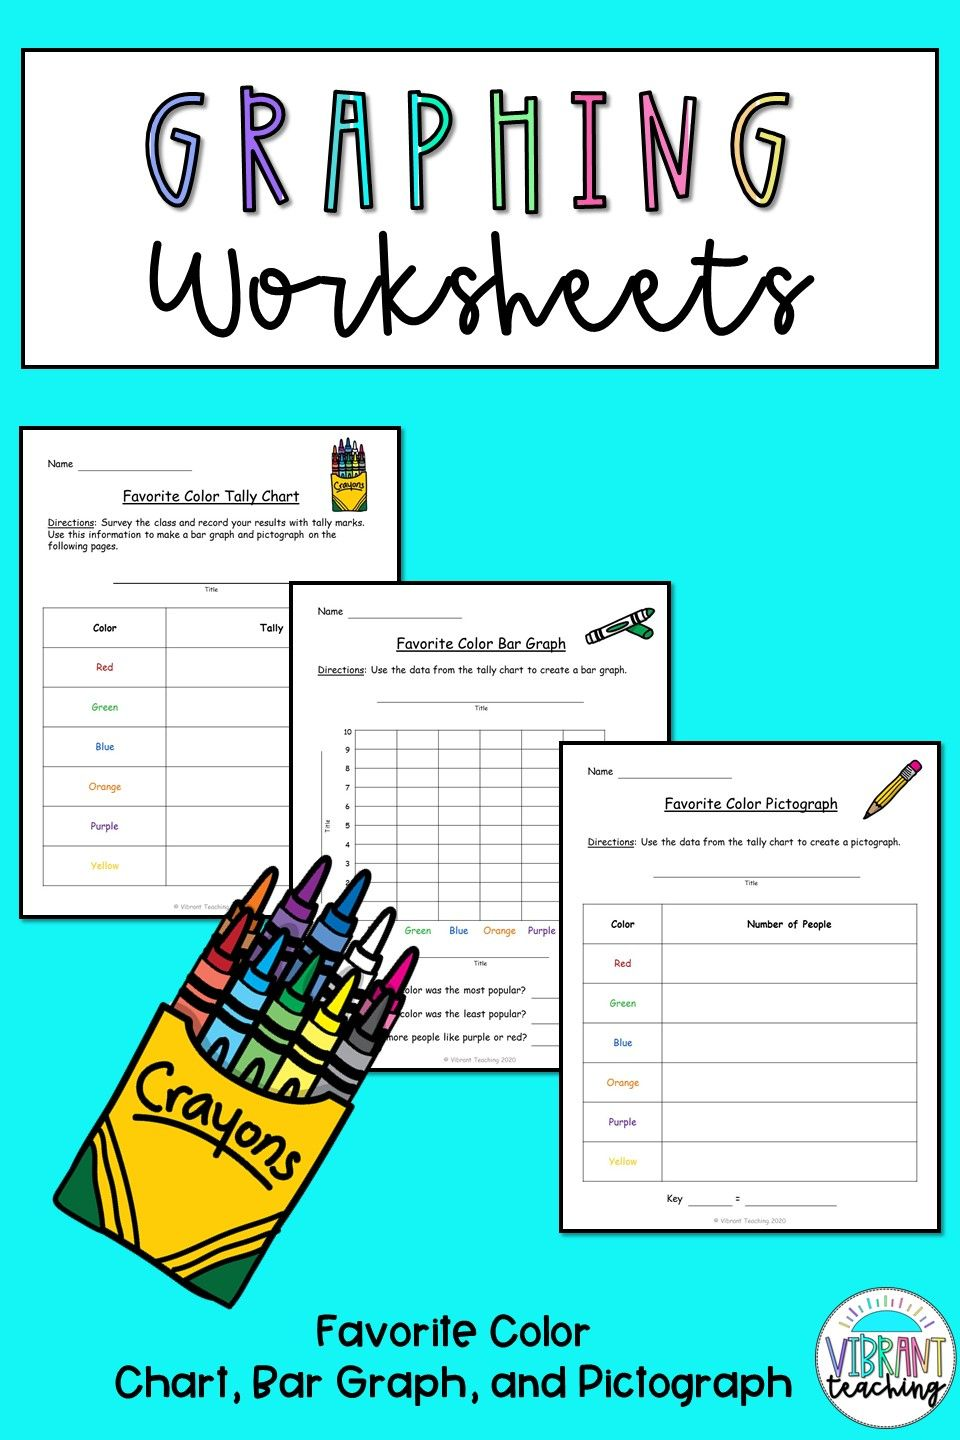 Graphing Worksheets Favorite Color Graphing Worksheets Bar Graphs Color Graphing [ 1440 x 960 Pixel ]